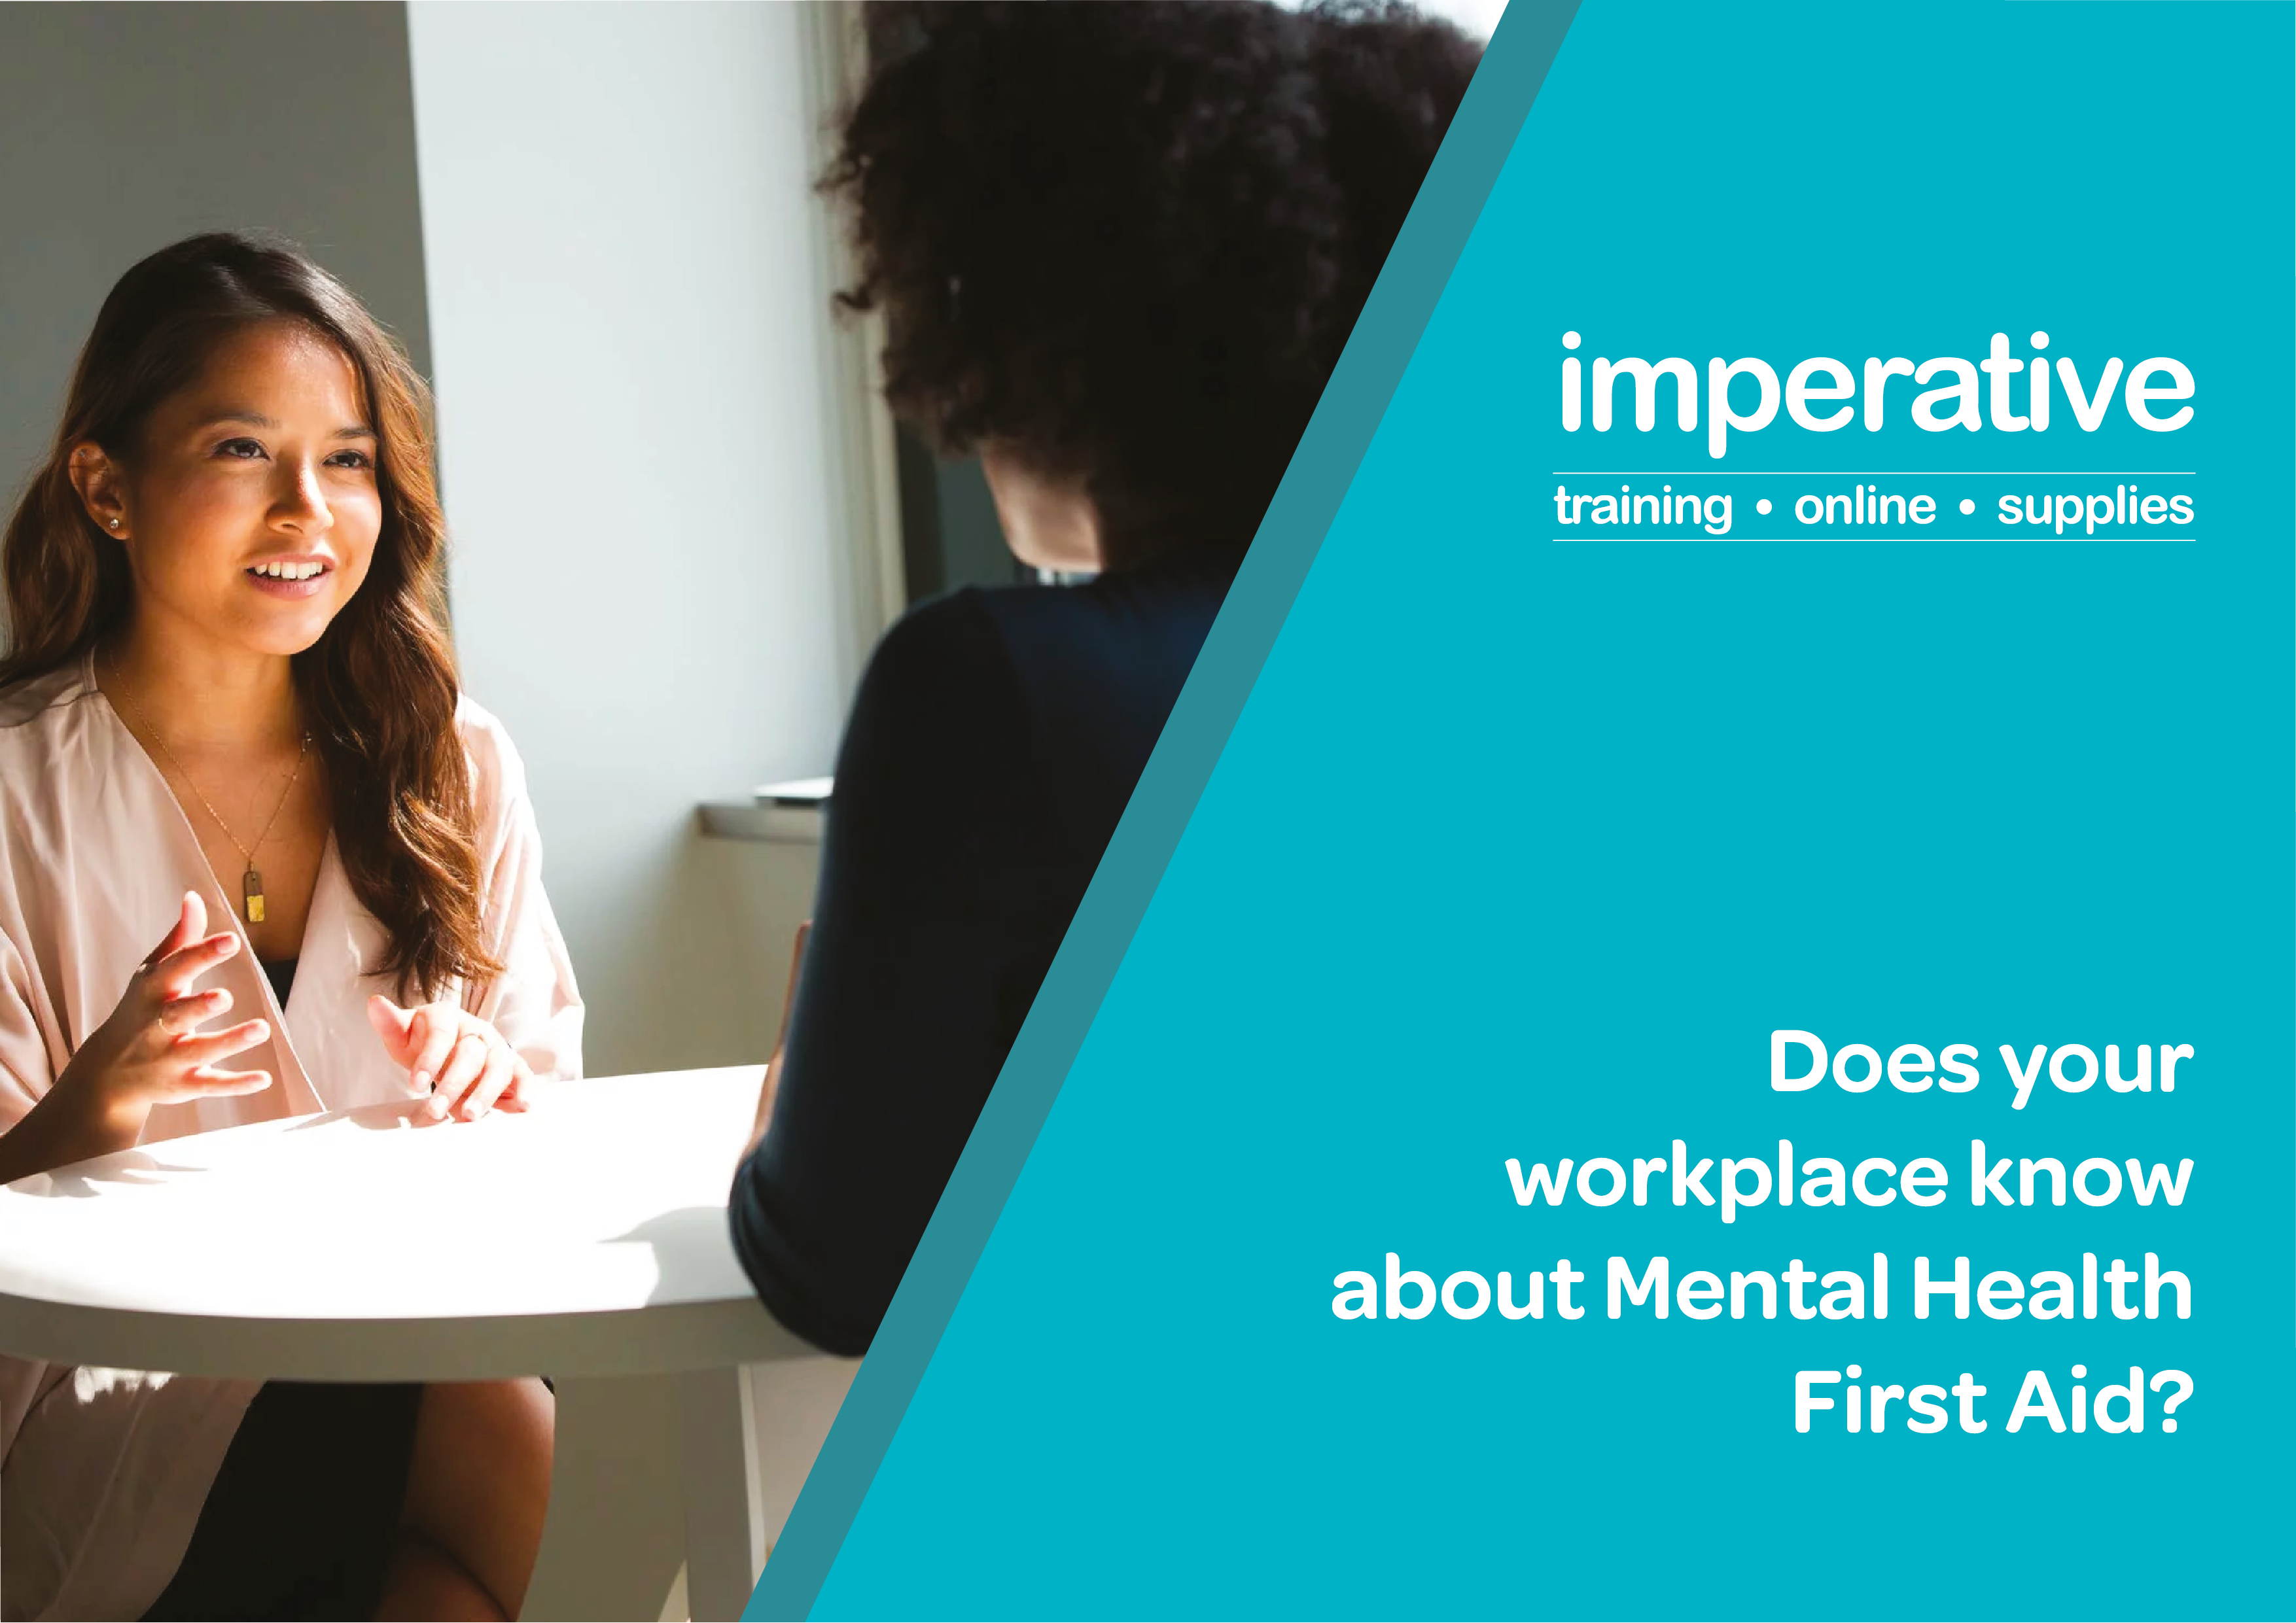 Does your Workplace know about Mental Health First Aid?